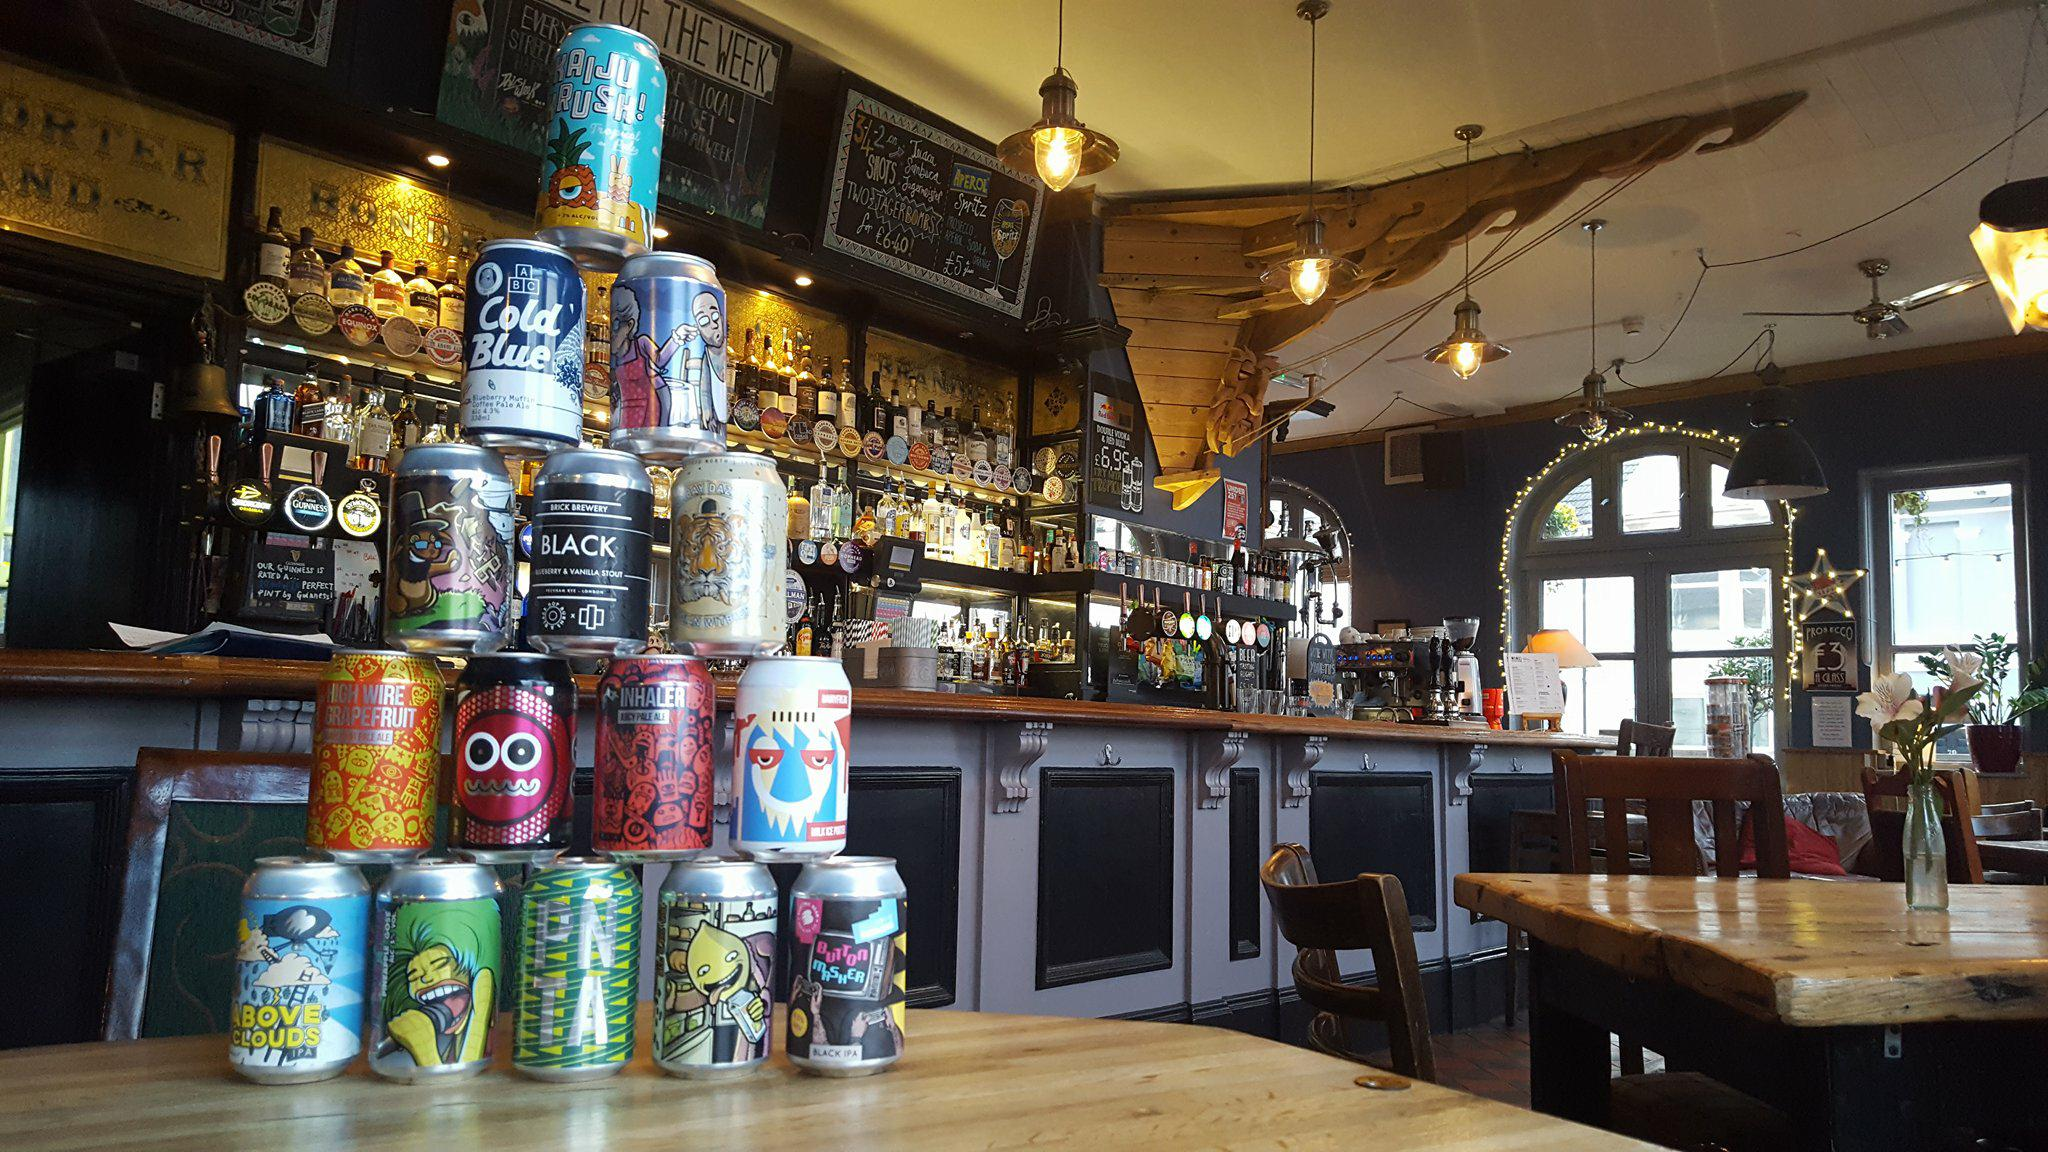 craft cans - We have A RANGE OF craft beers ON DRAFT AND in cans at any time, always changing, ALWAYS ACCOMMODATING A RANGE OF TASTES!